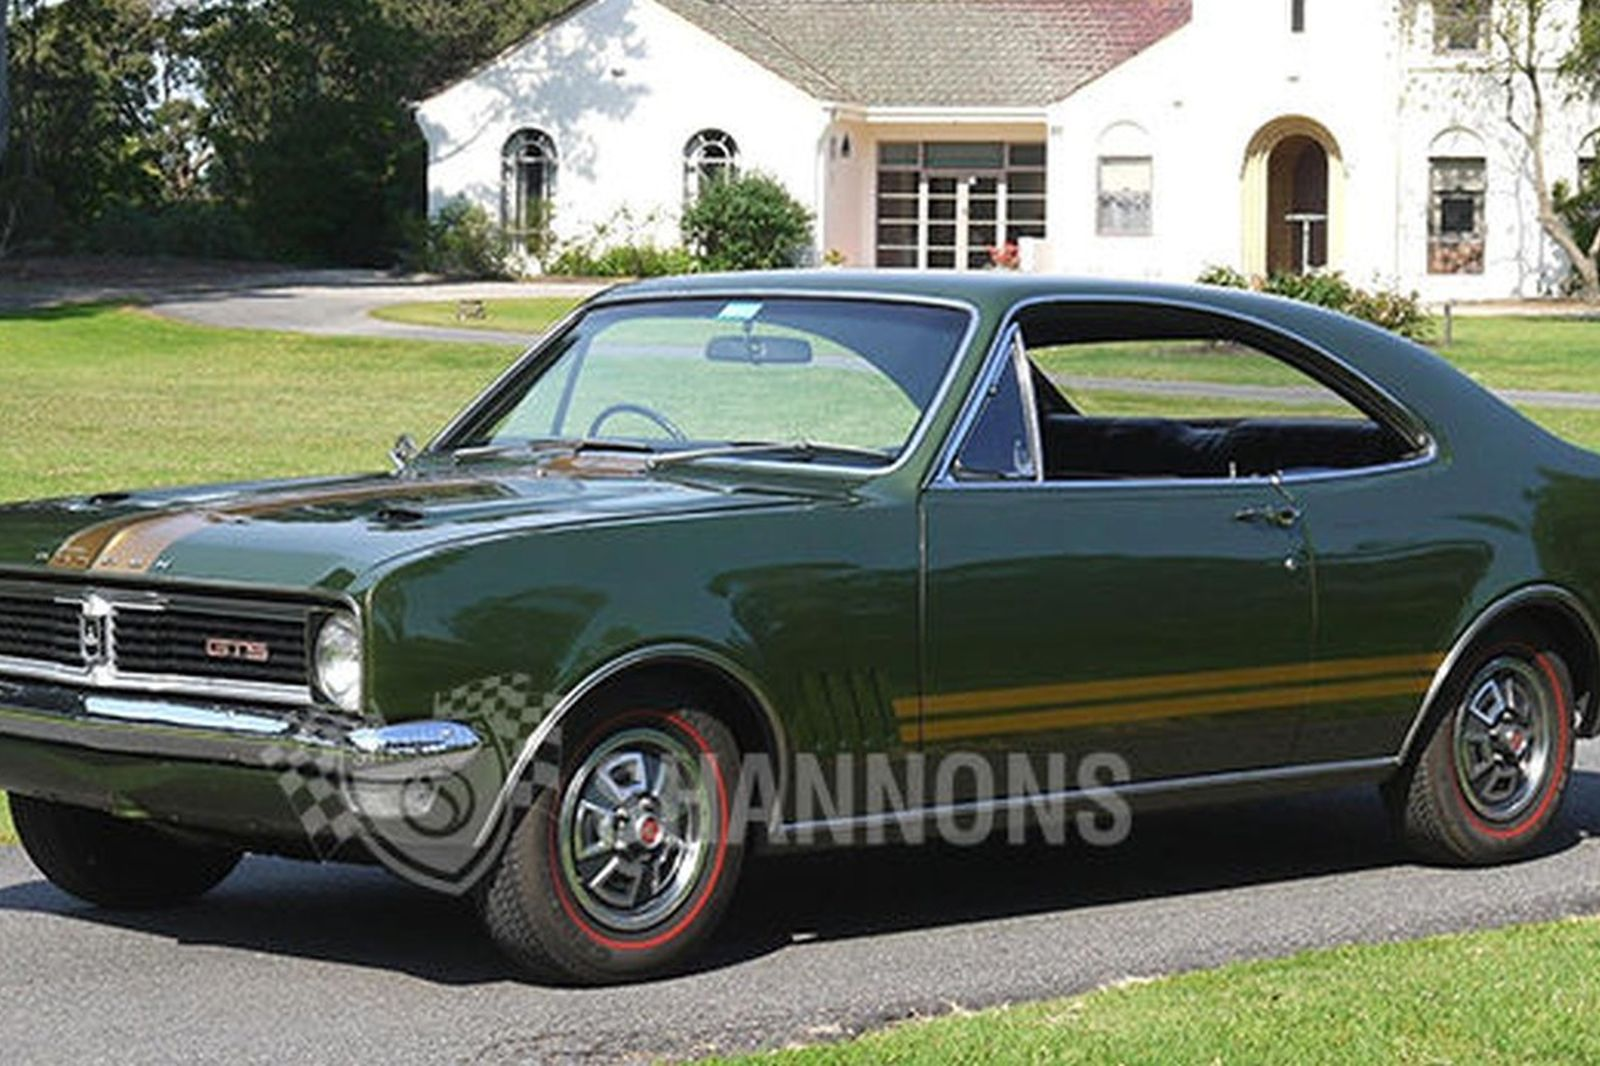 Holden Ht Gts Monaro 186s Coupe Auctions Lot 14 Shannons